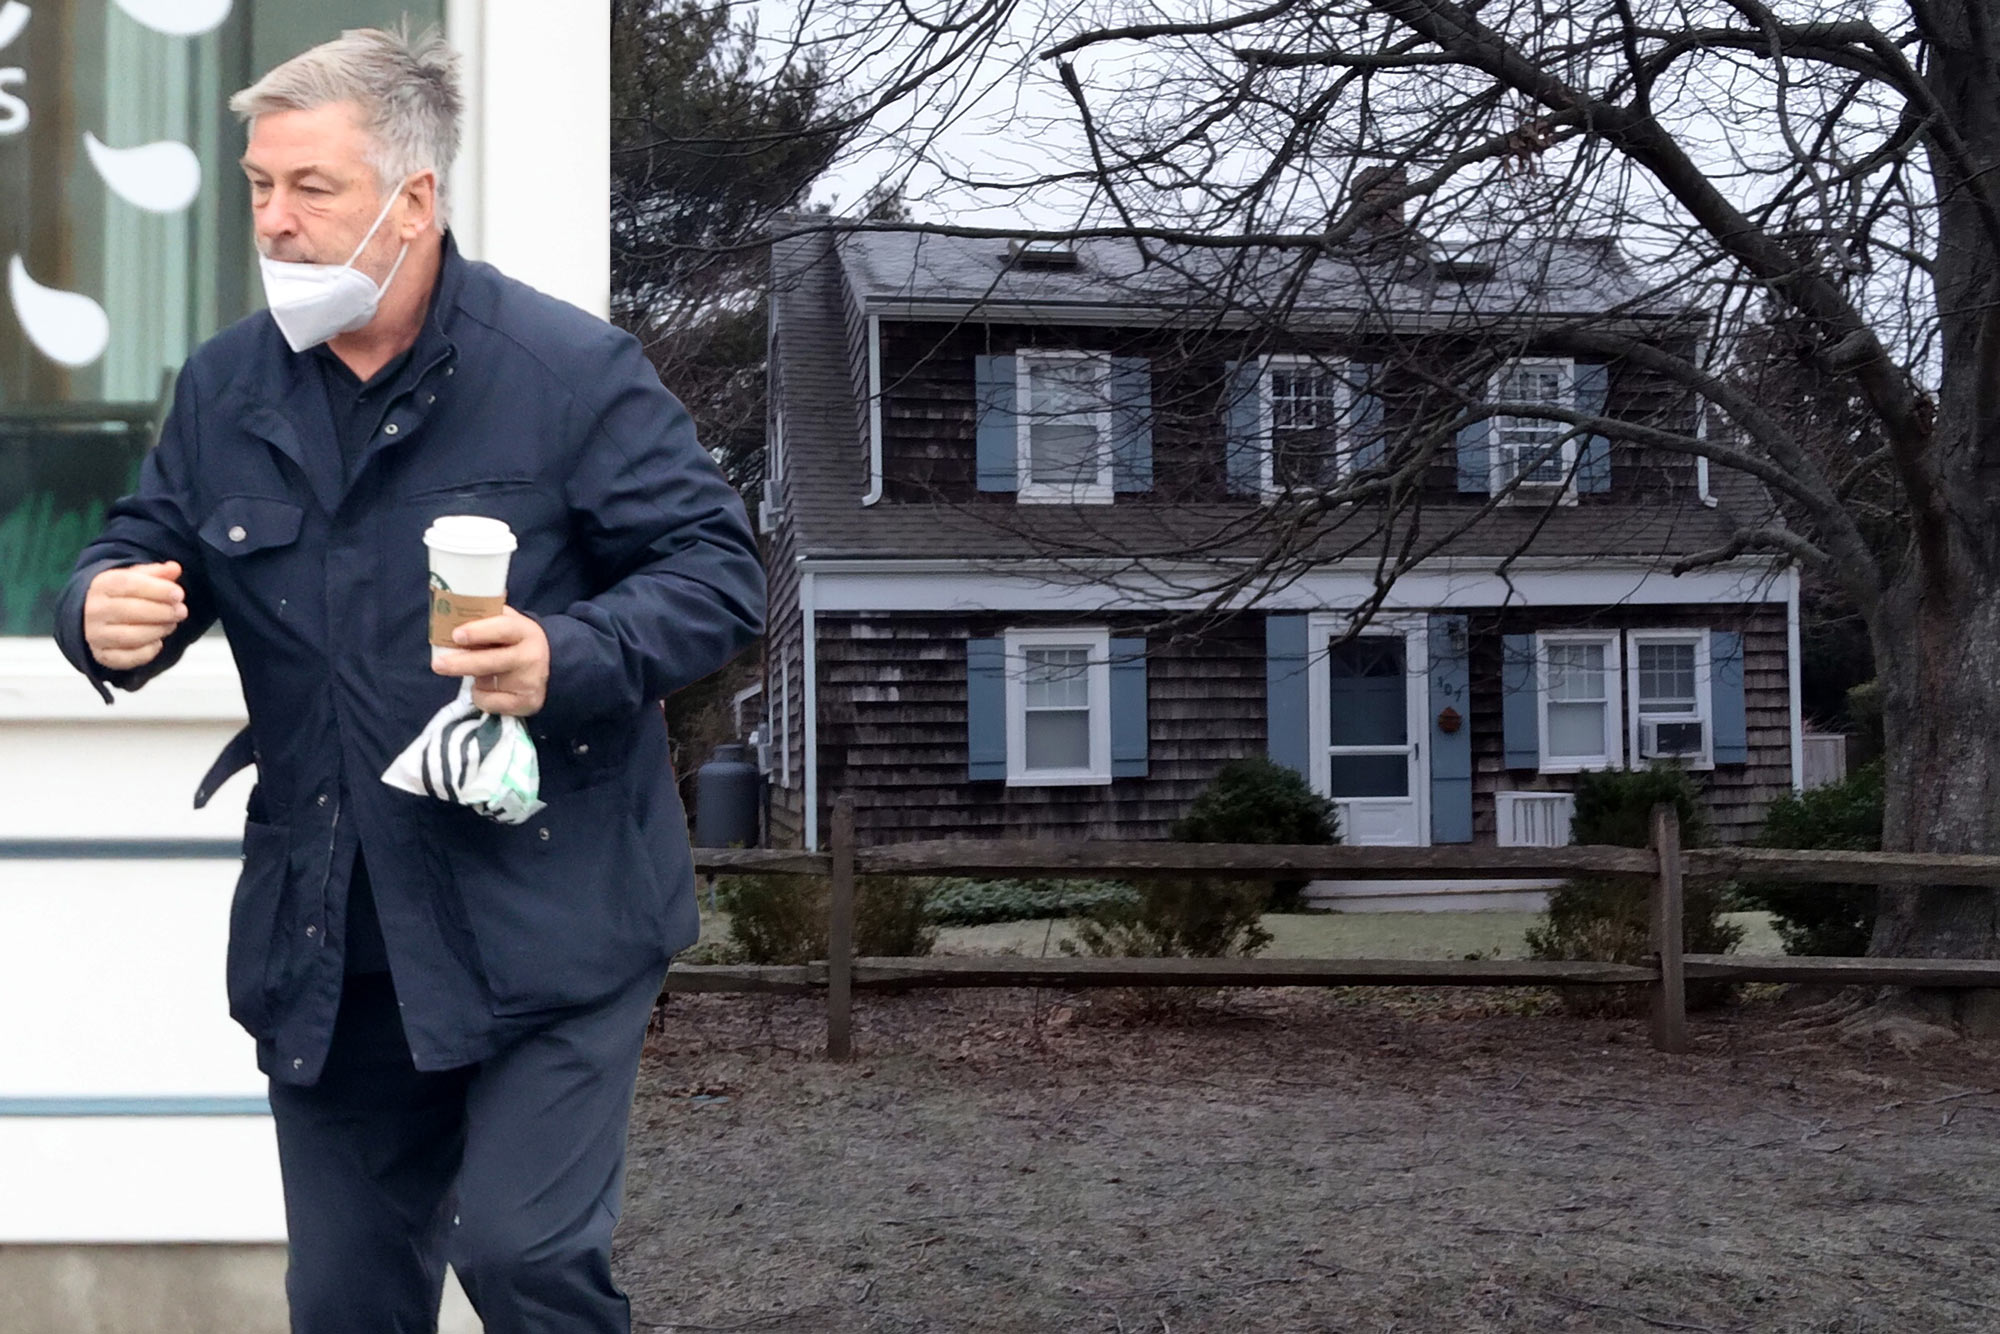 Alec Baldwin staying in separate house from Hilaria